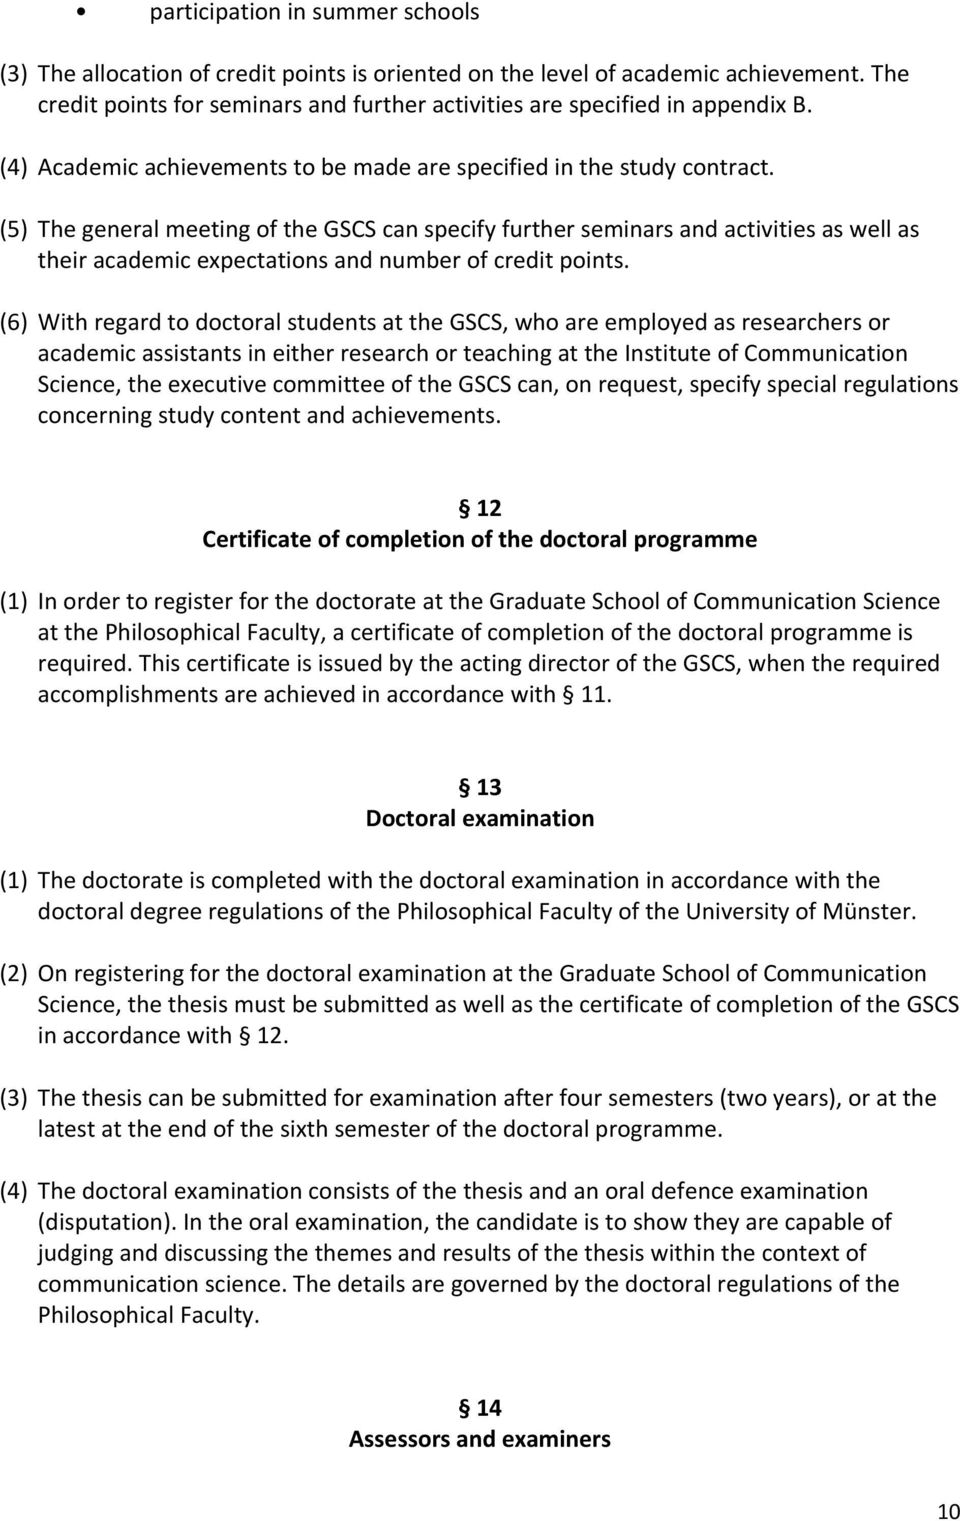 (5) The general meeting of the GSCS can specify further seminars and activities as well as their academic expectations and number of credit points.